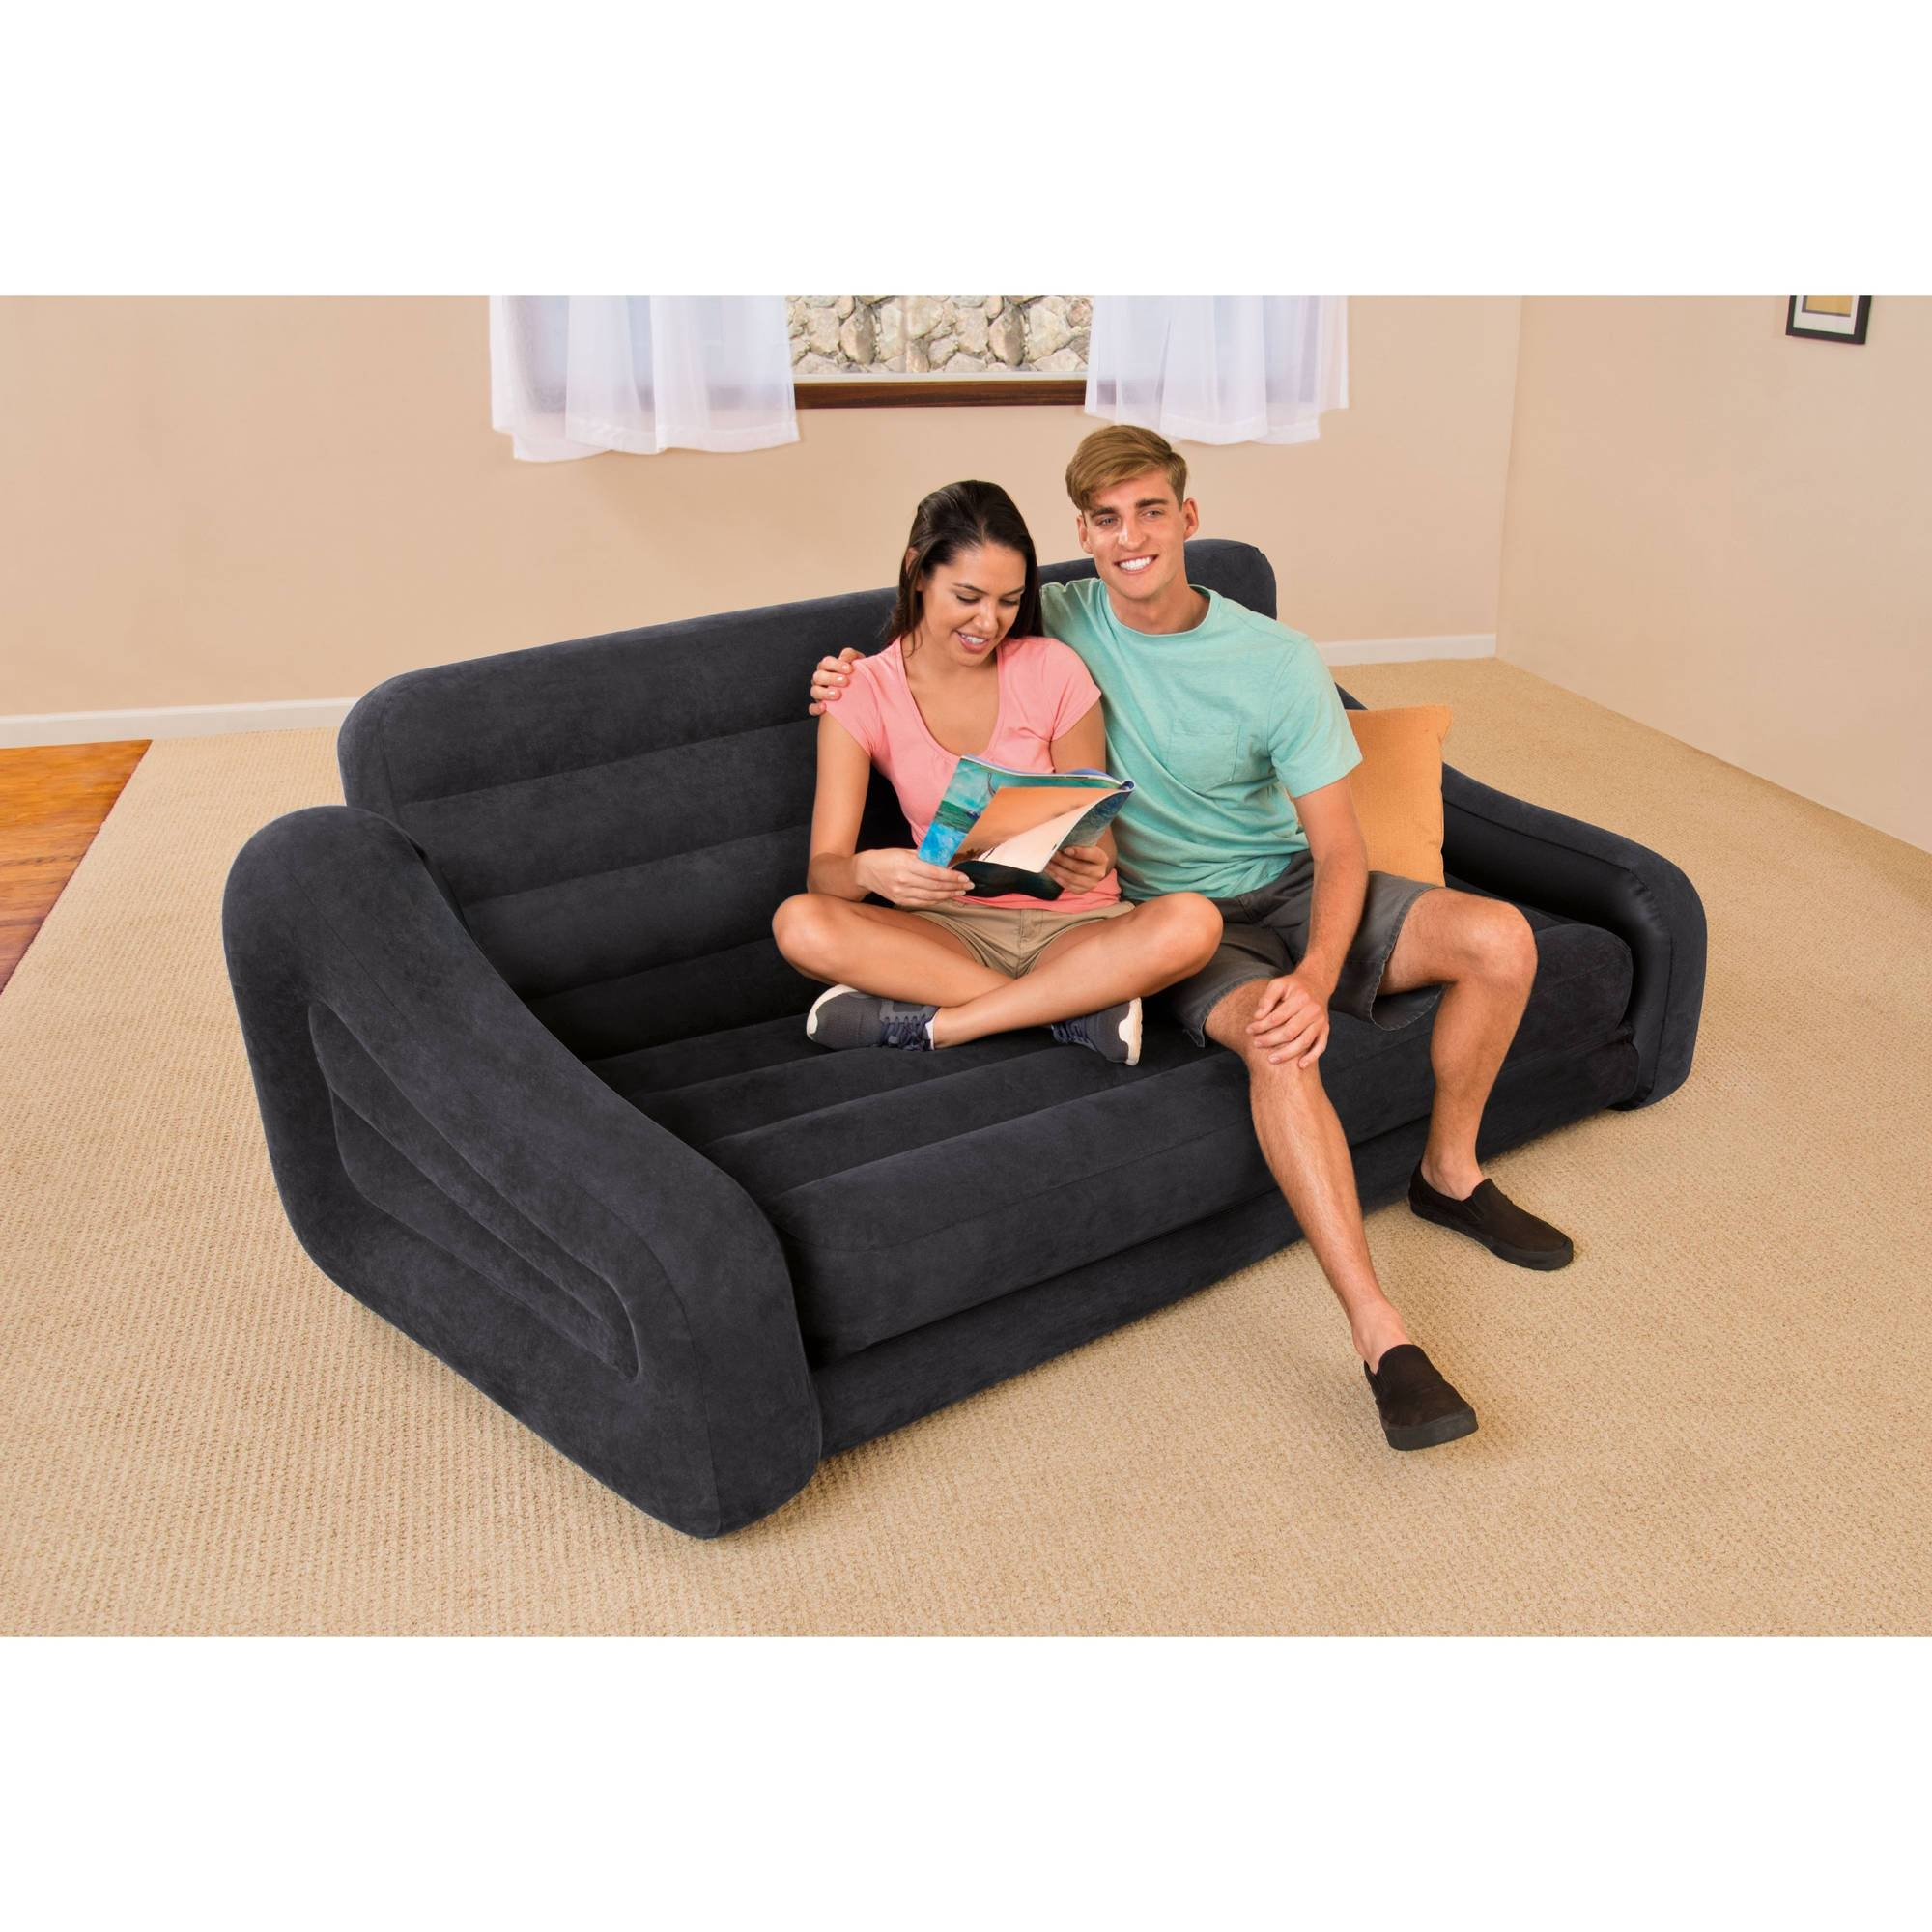 Intex Queen Inflatable Pull-Out Sofa Bed - Walmart throughout Inflatable Sofas And Chairs (Image 10 of 15)